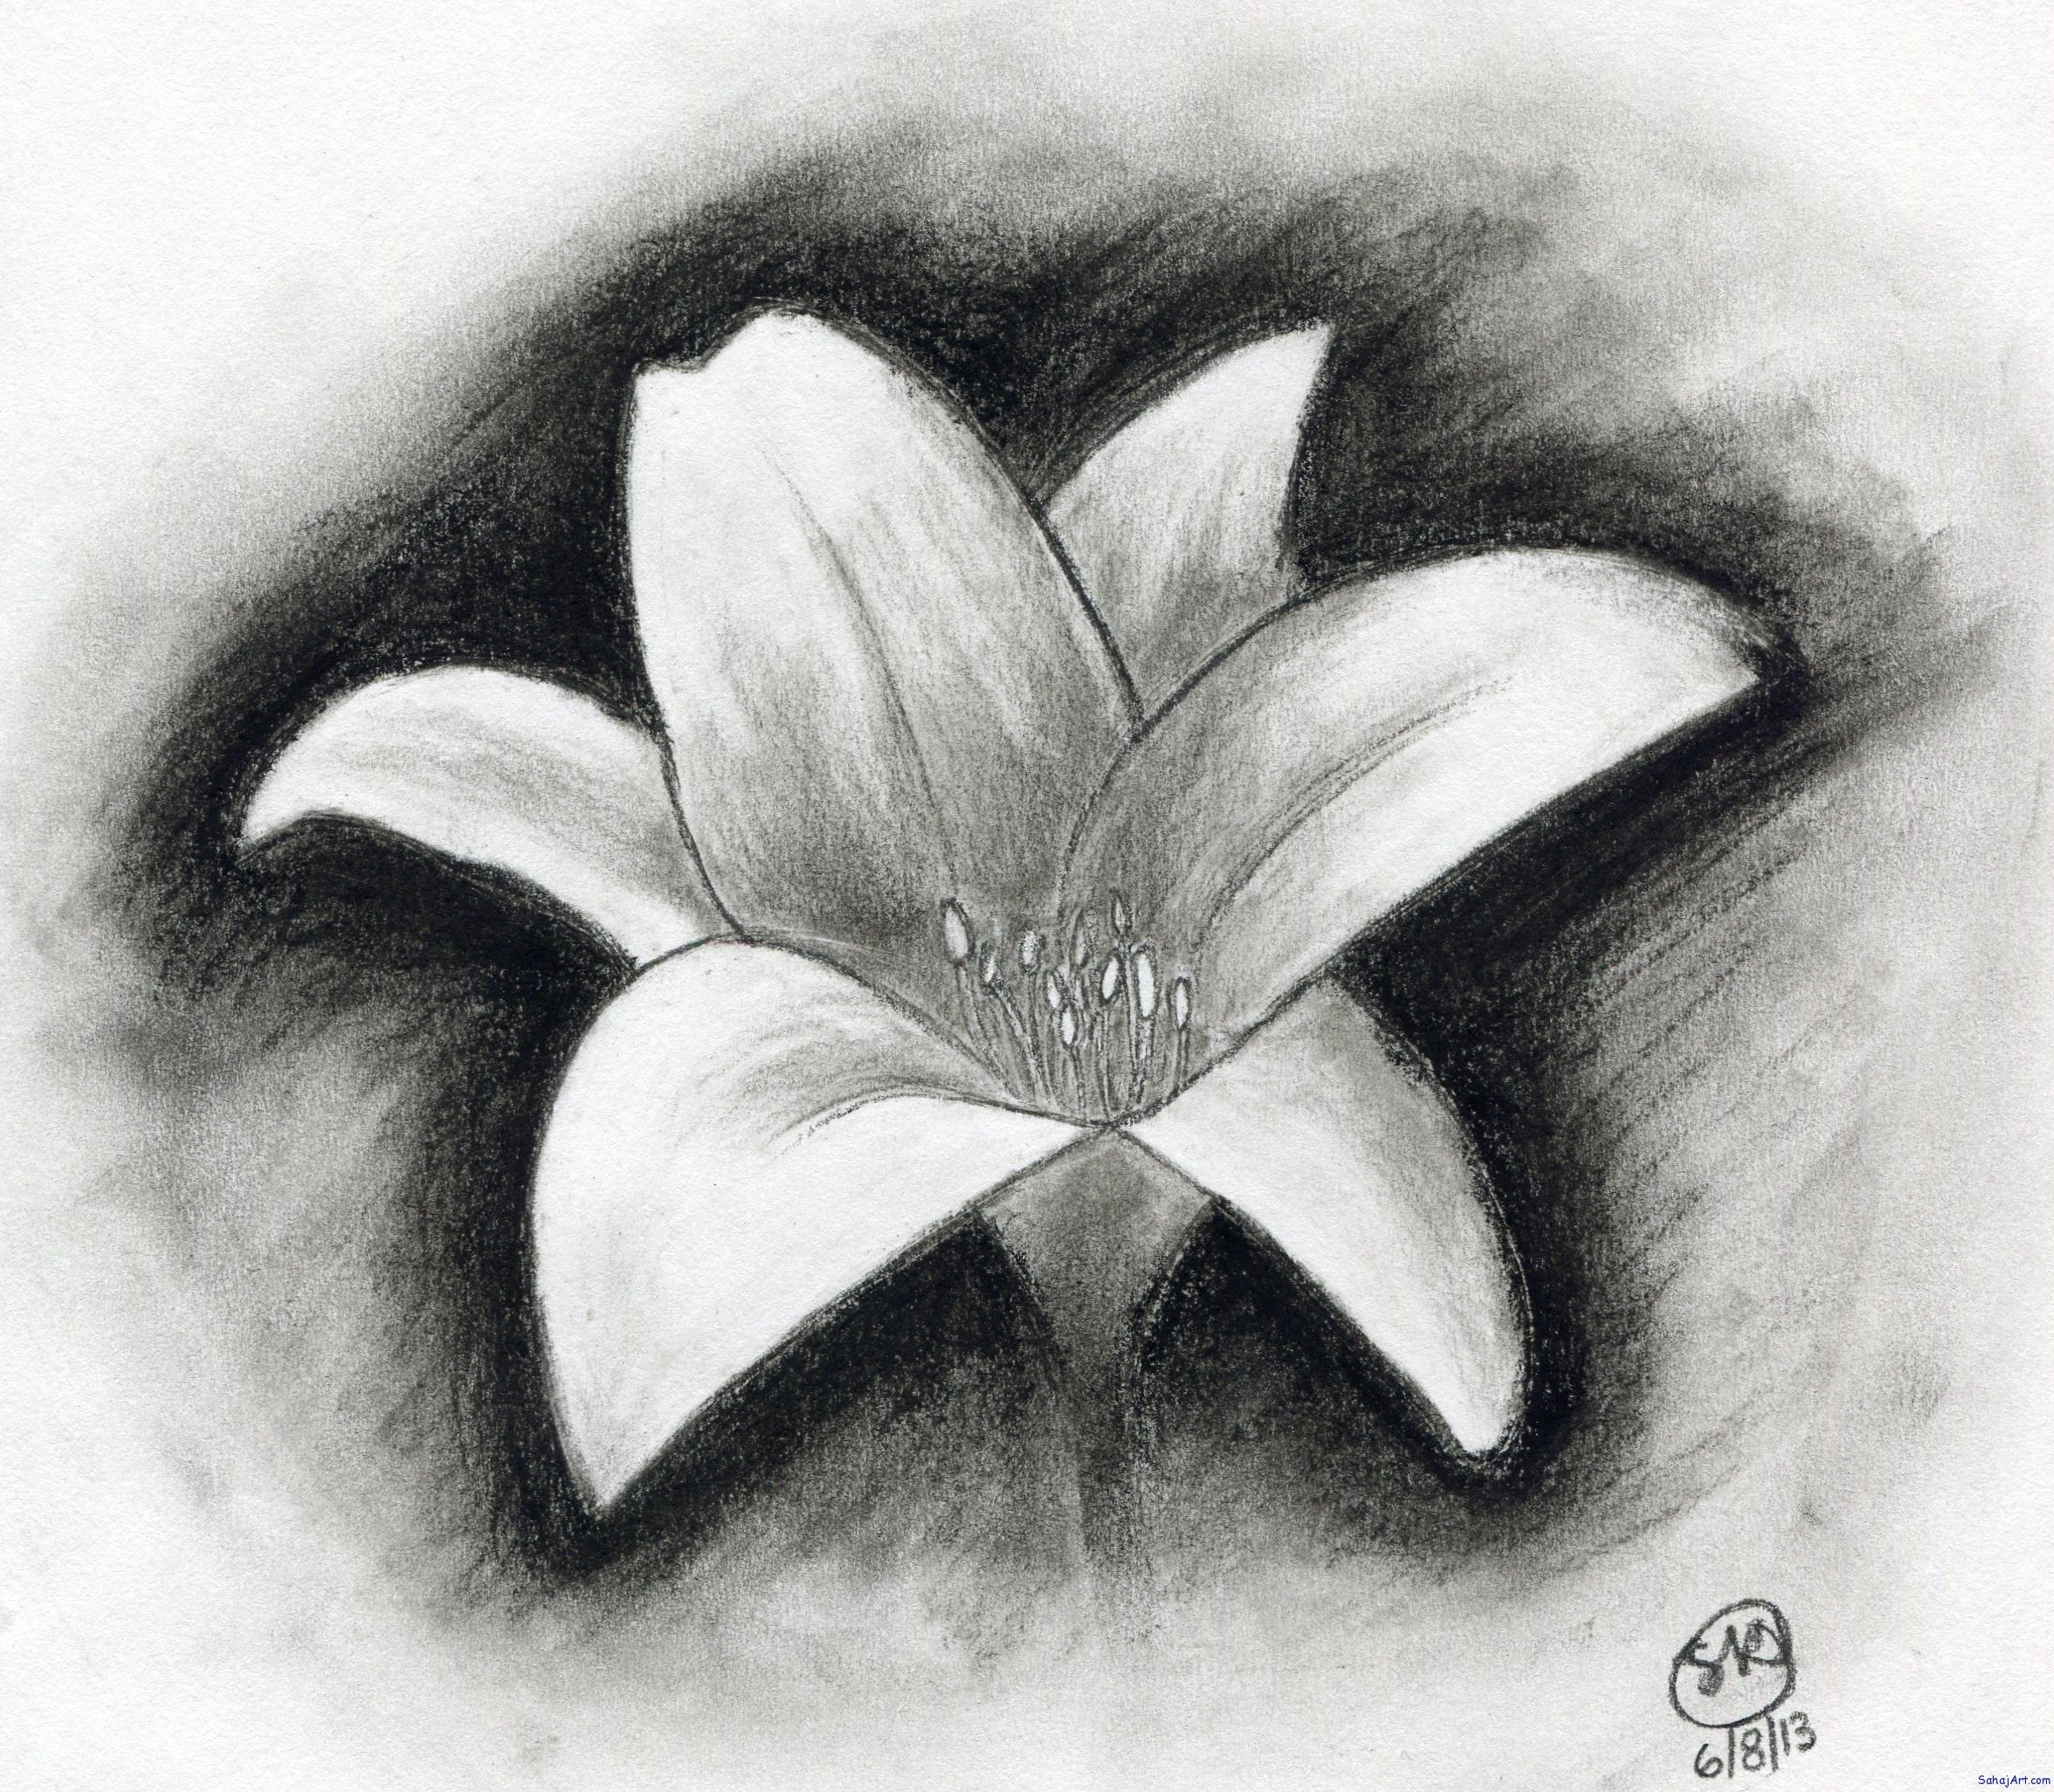 Charcoal Drawing Beginners Easy Charcoal Drawings Flowers Shading Pinterest Drawing Easy Charcoal Drawings Charcoal Sketch Charcoal Drawing